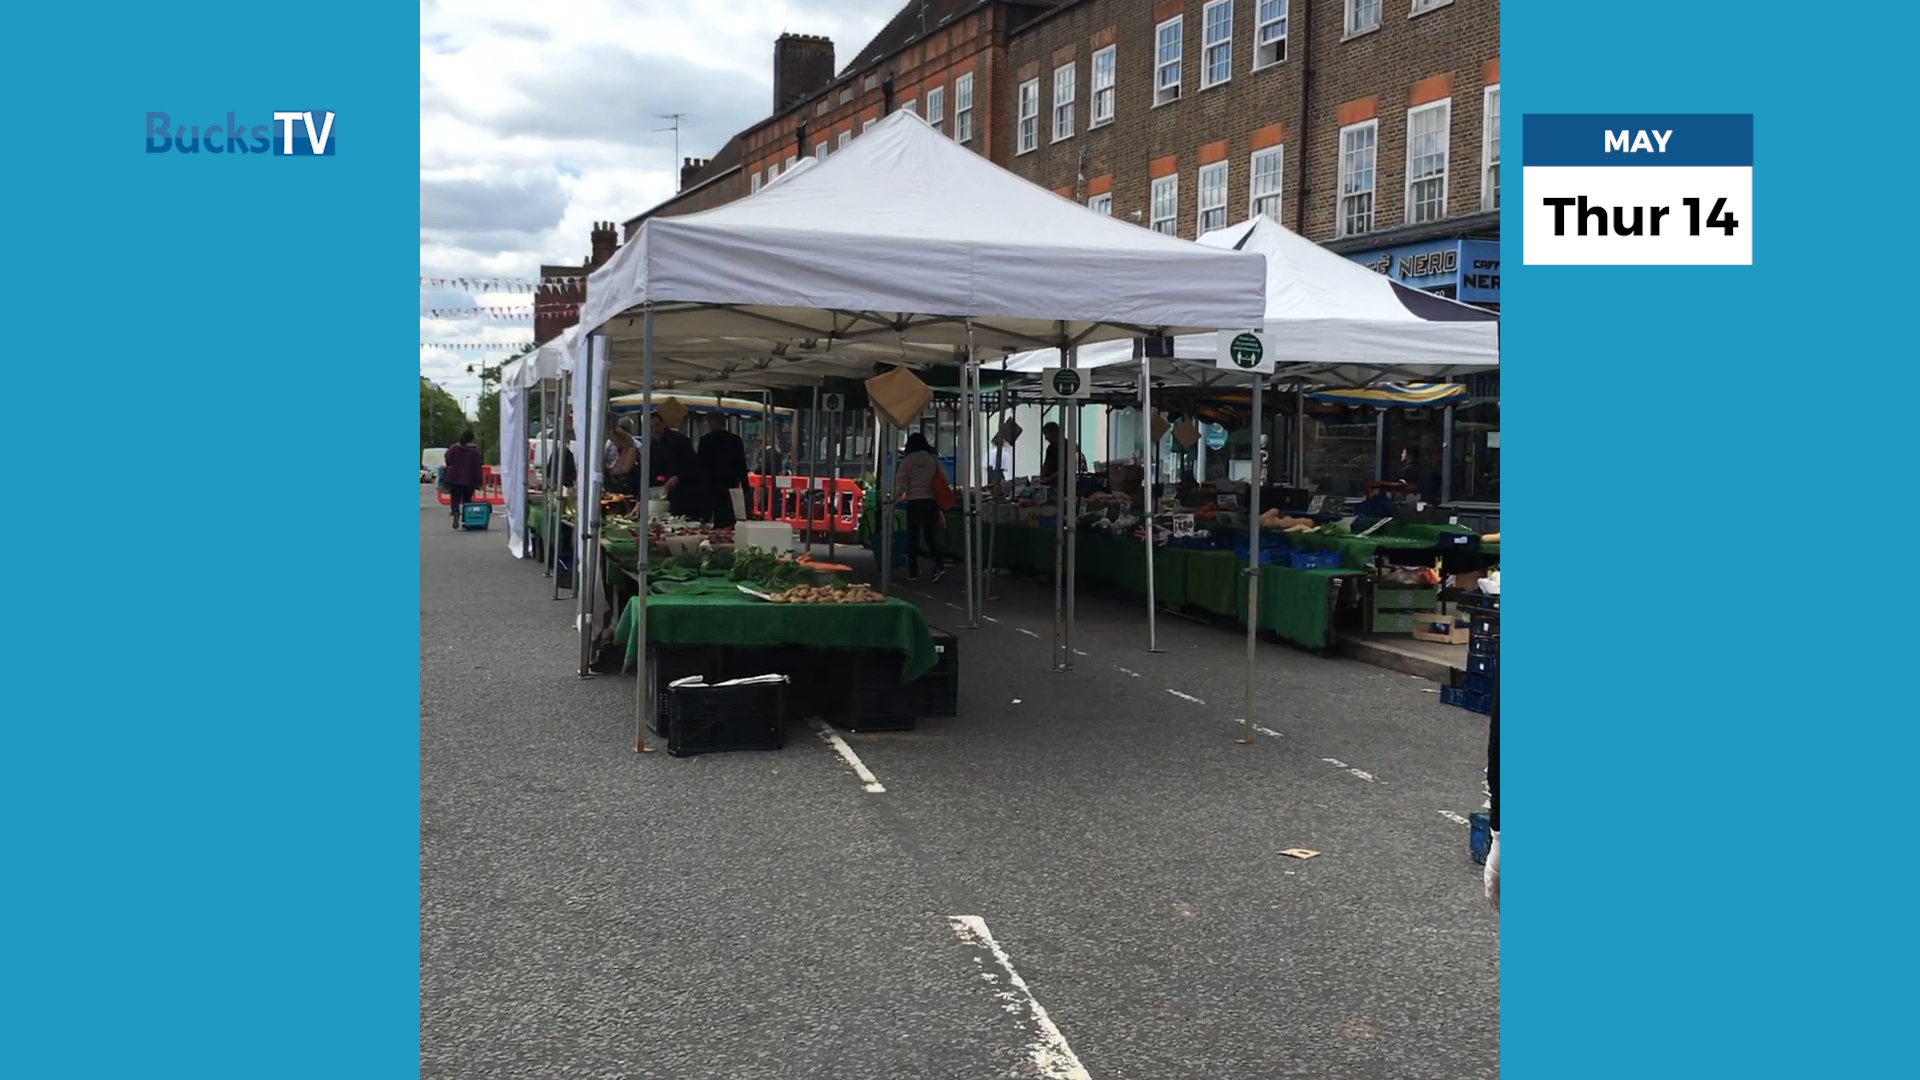 The Isolation Pod Show – Tues 19th May 2020 – AMERSHAM MARKET